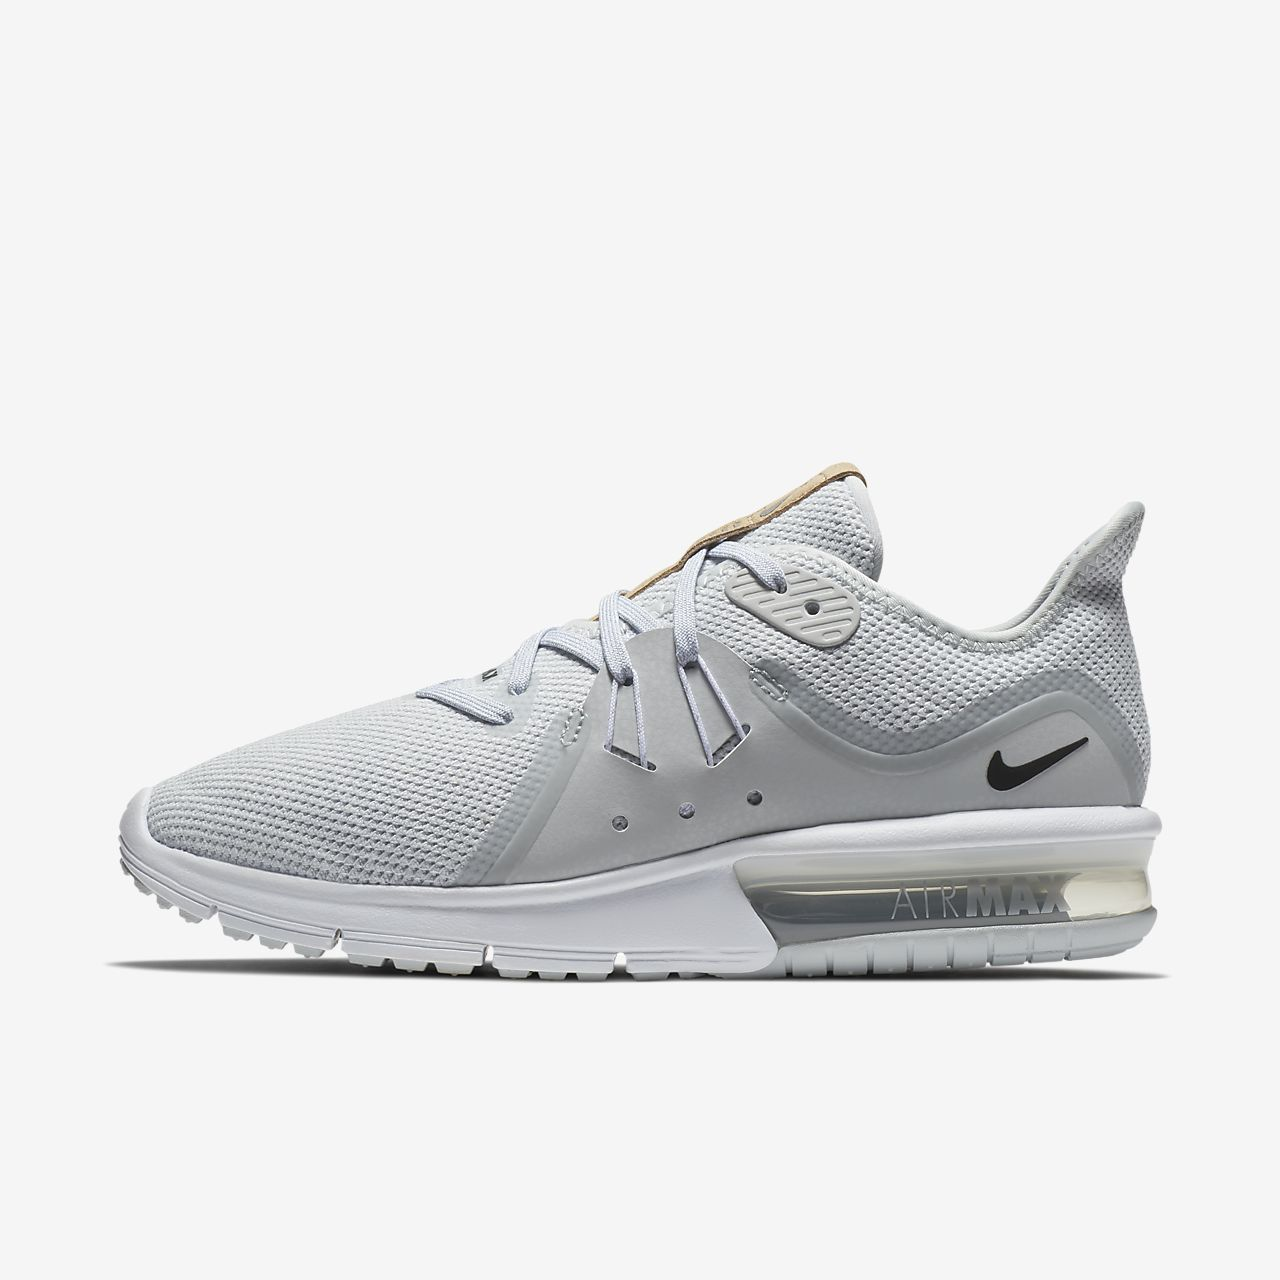 8dae51752e0 Nike Air Max Sequent 3 Women s Shoe. Nike.com